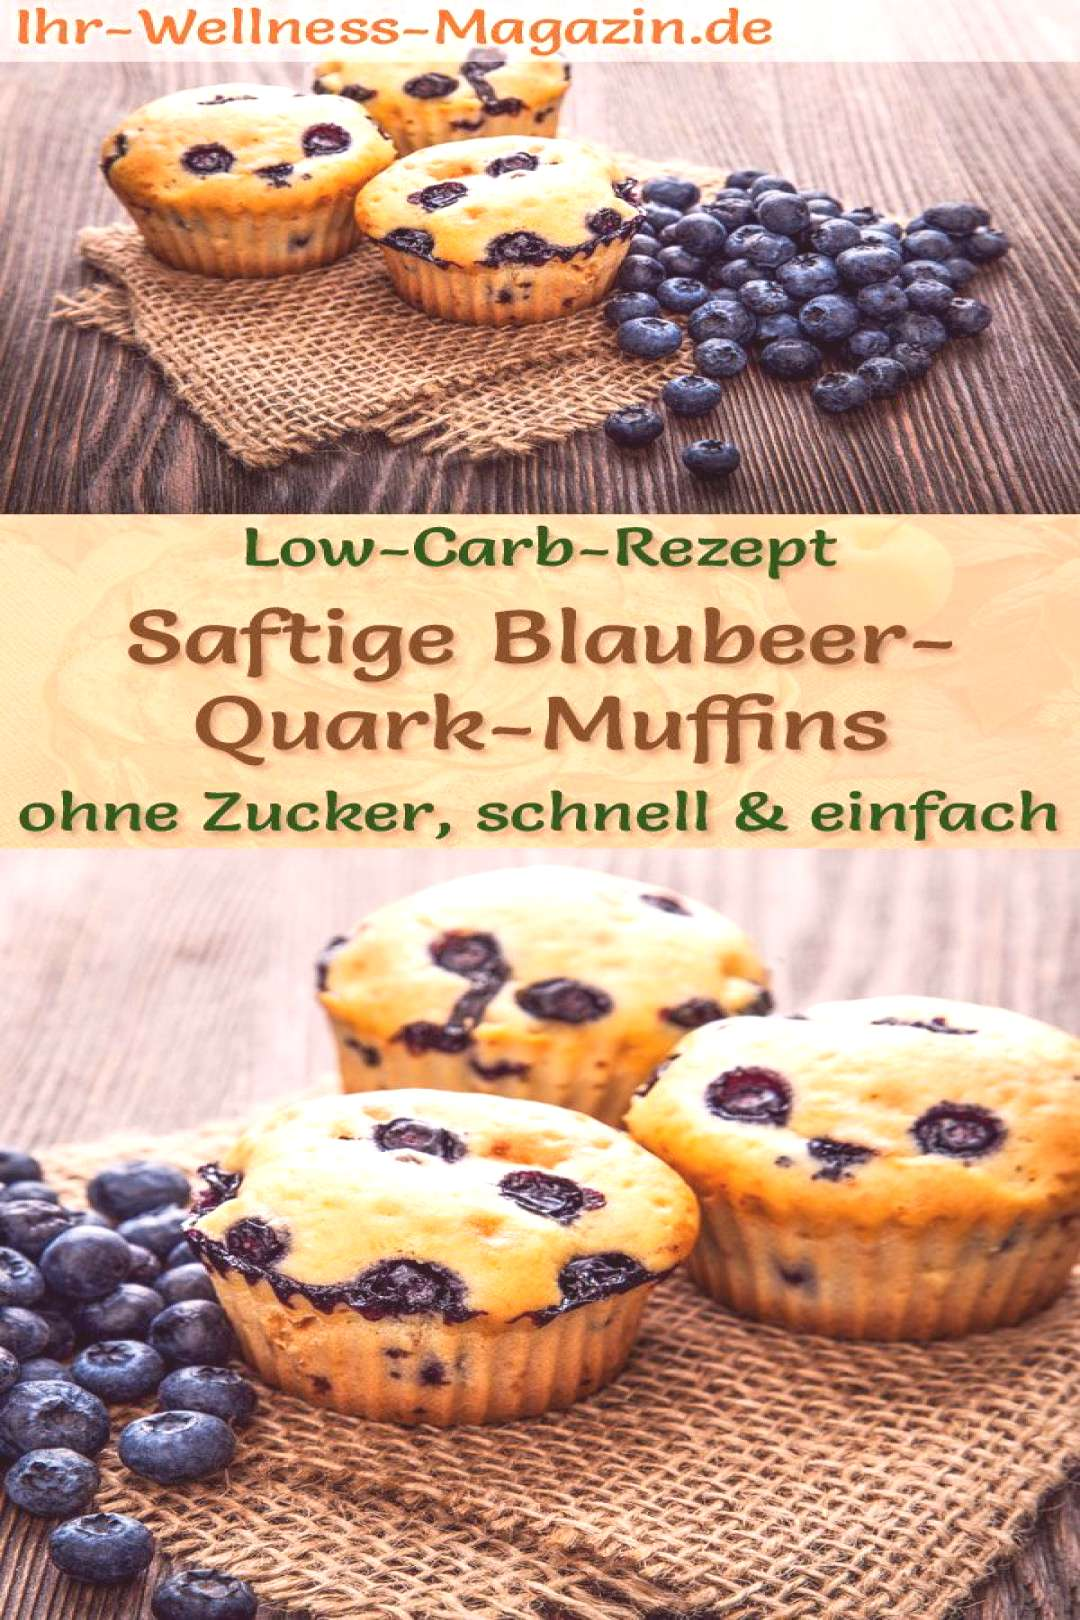 Juicy low carb blueberry quark muffins - simple recipe without sugar - -